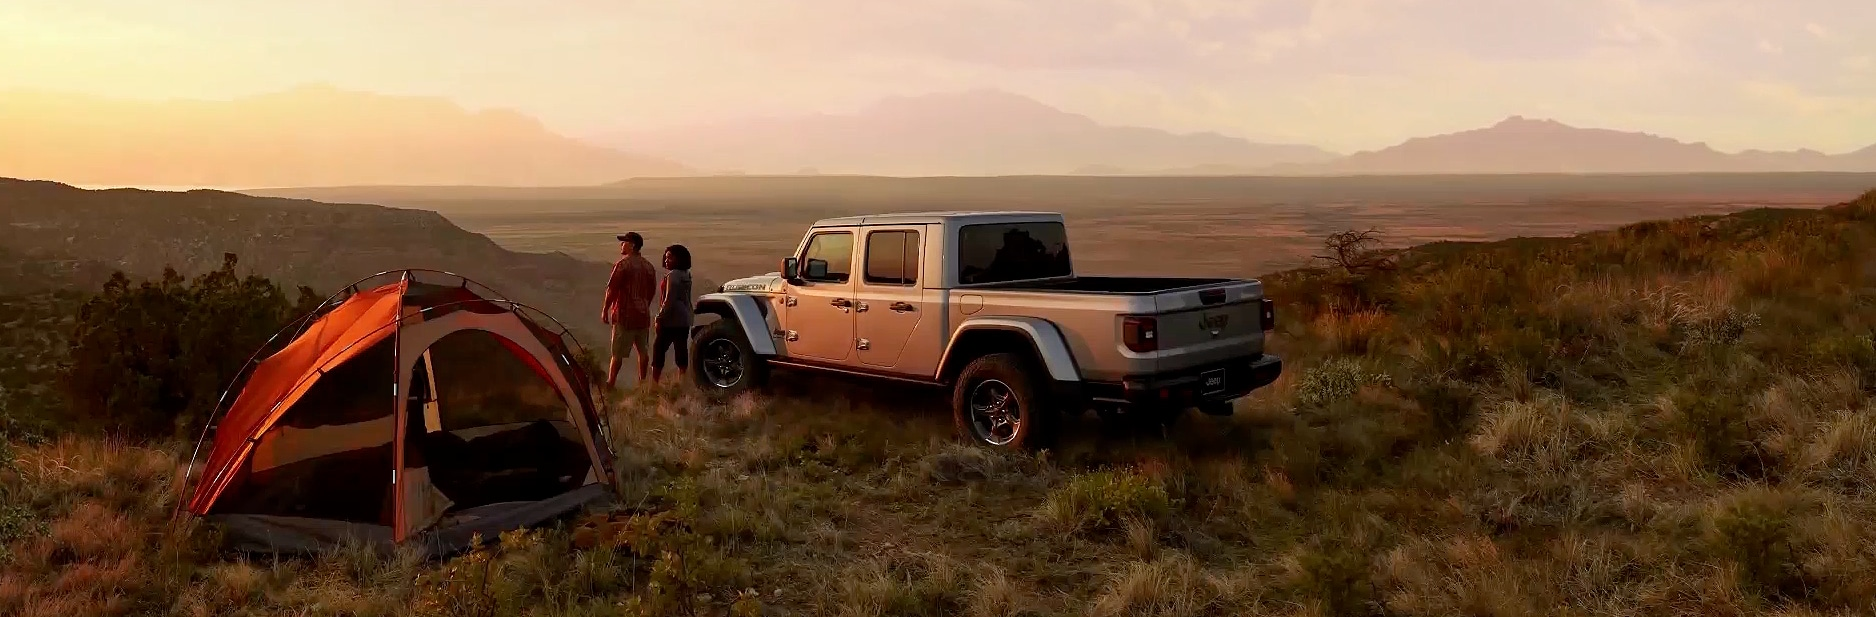 Denver Jeep Gladiator for sale and lease